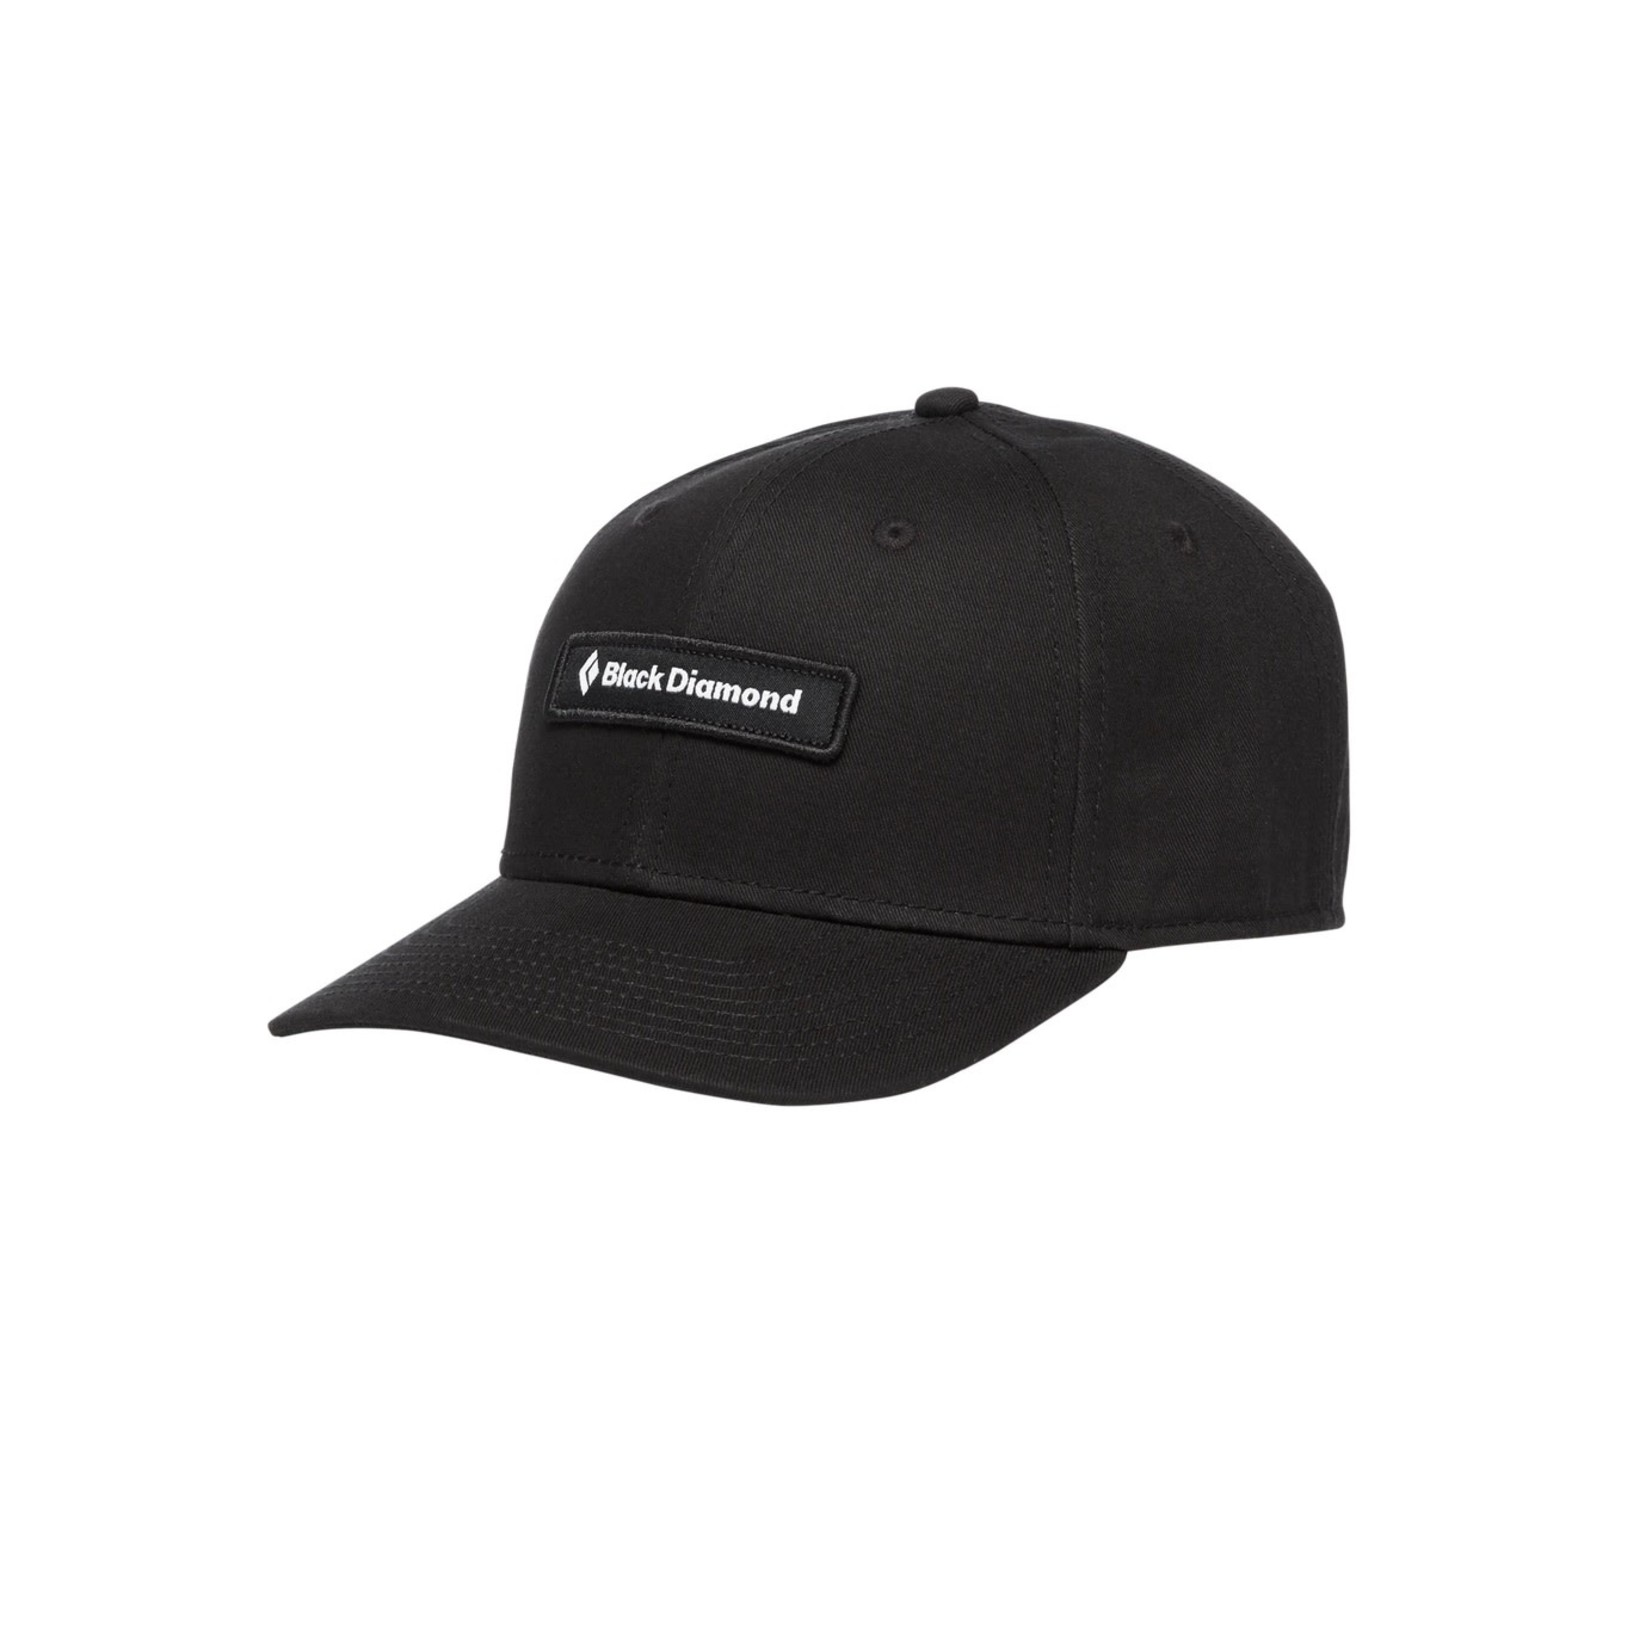 Black Diamond Casquette Black Diamond Black Label